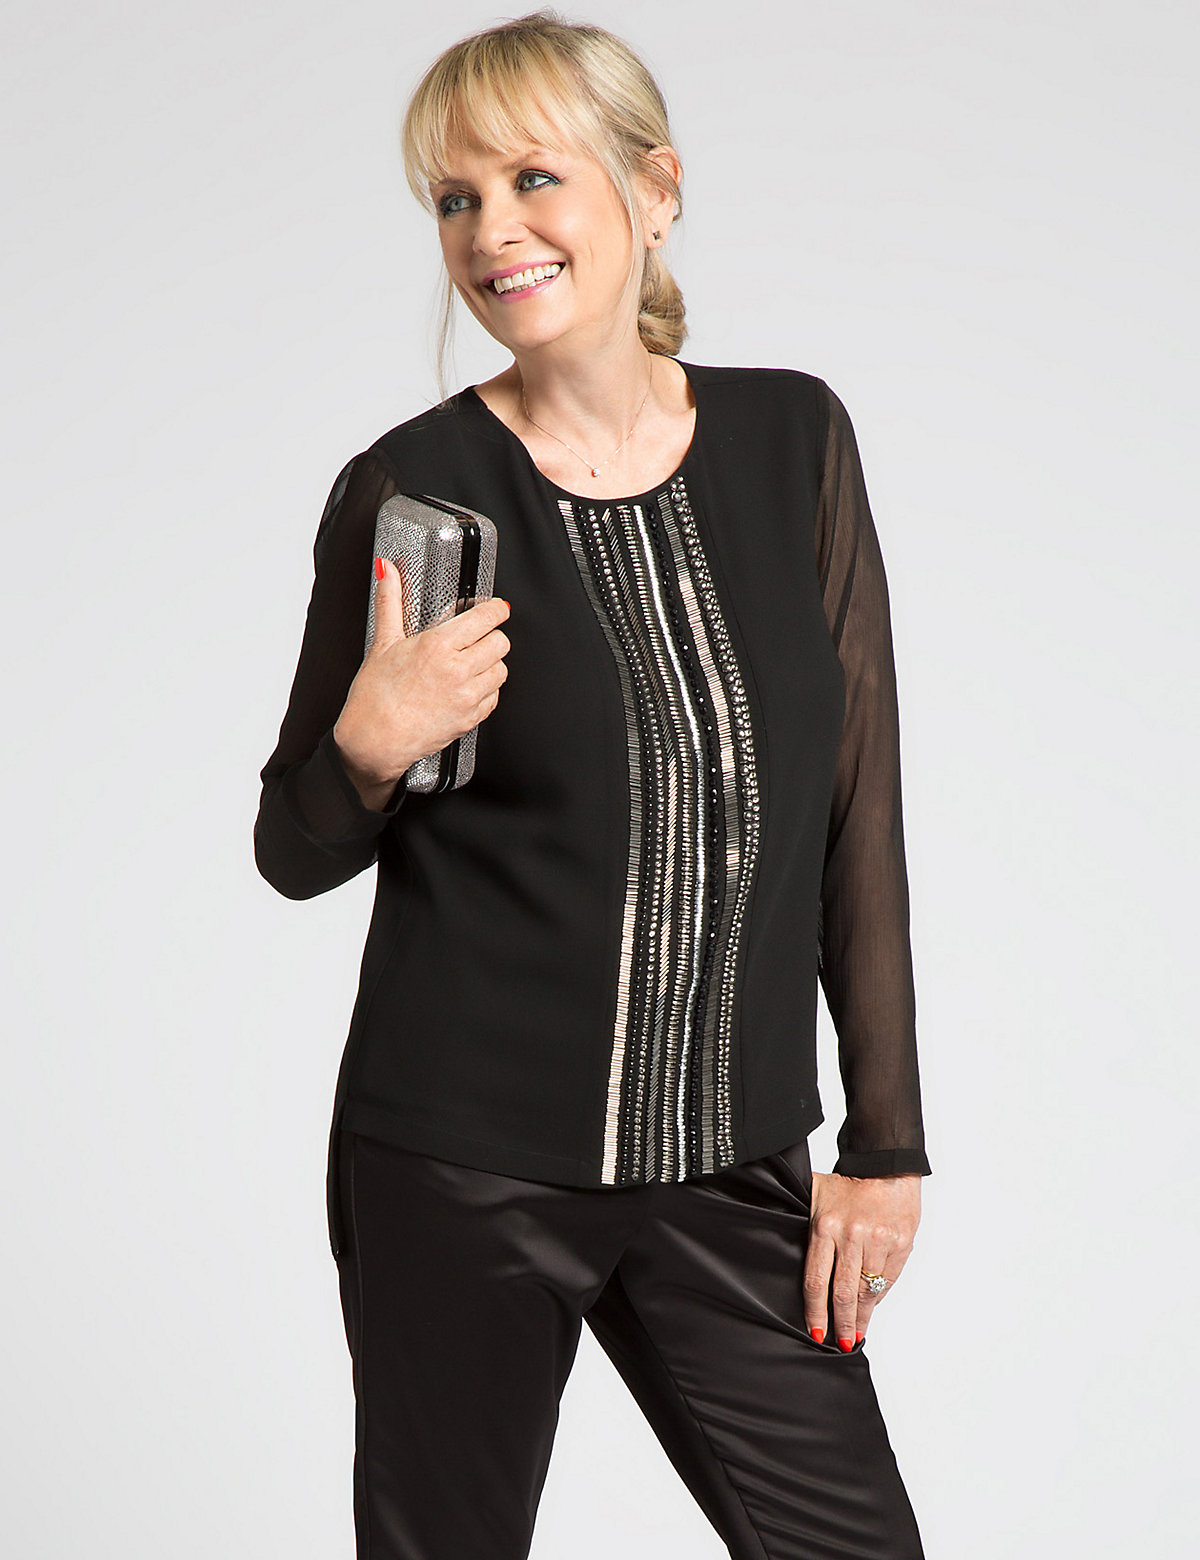 Designed by Twiggy Beaded Long Sleeve Blouse